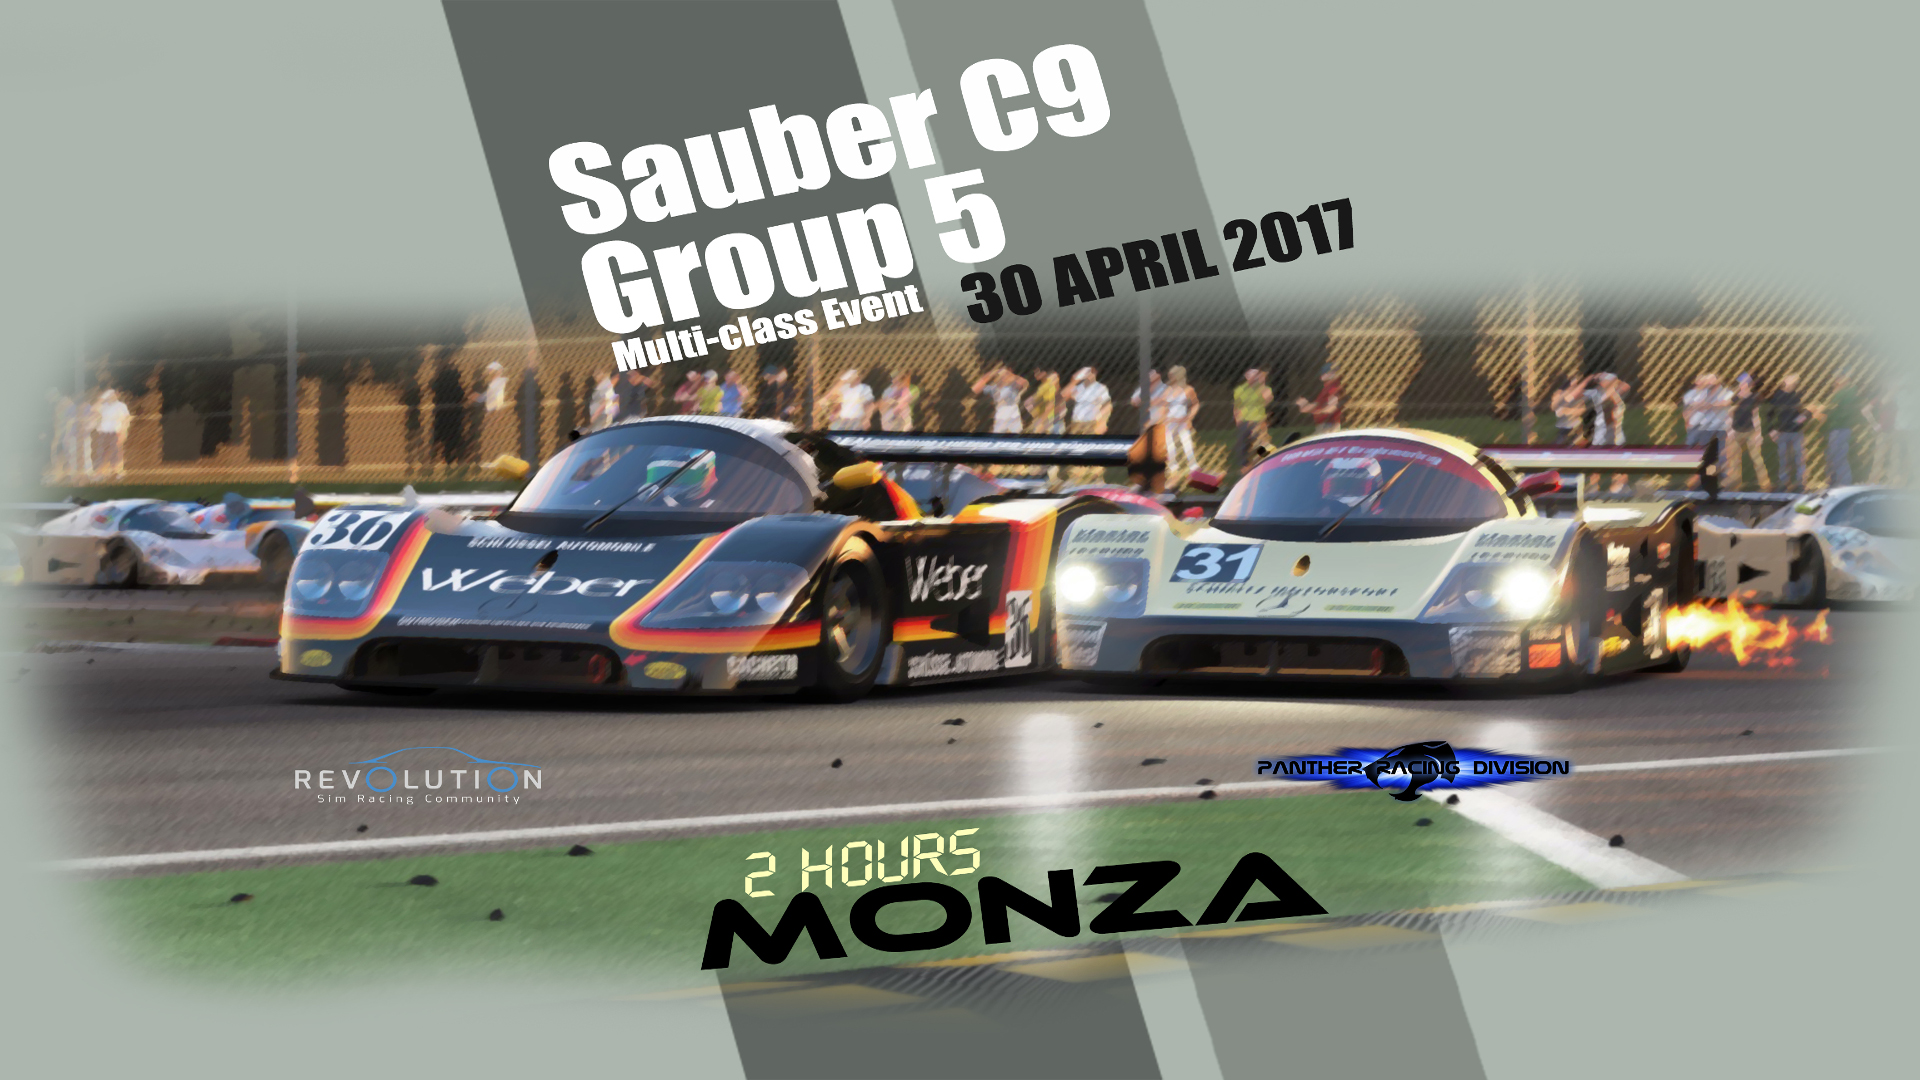 SauberC9_Group5 poster revised2.jpg